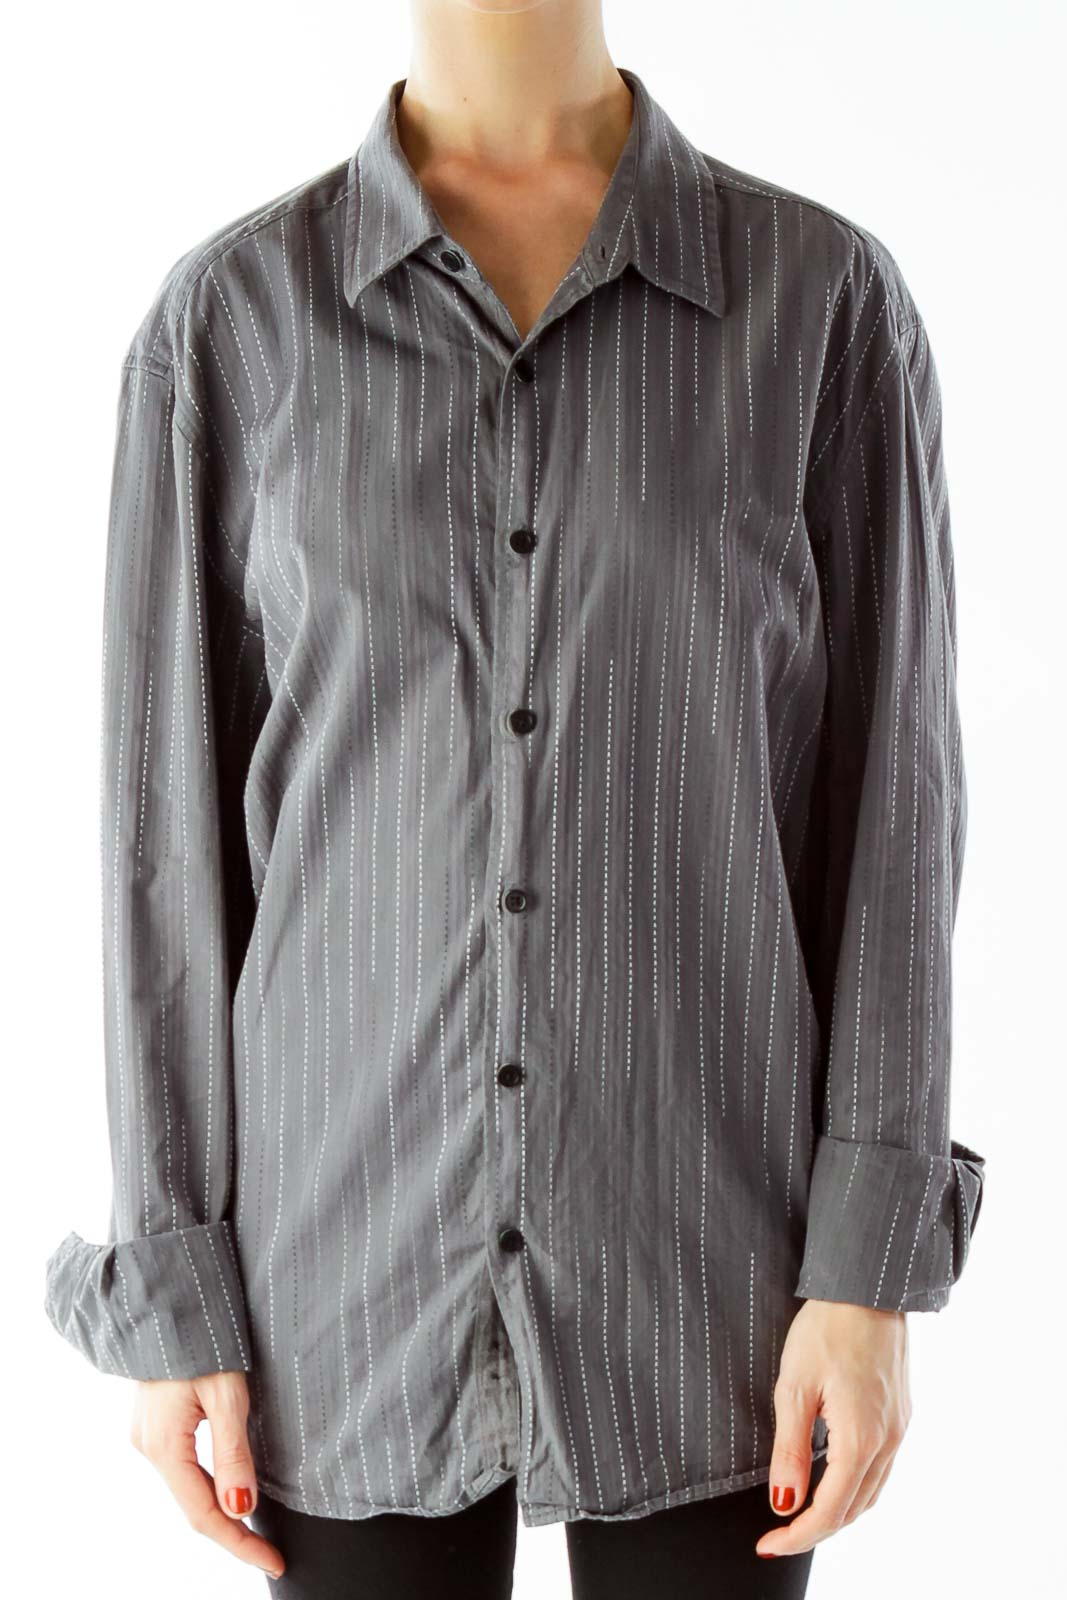 Gray Striped Shirt Front